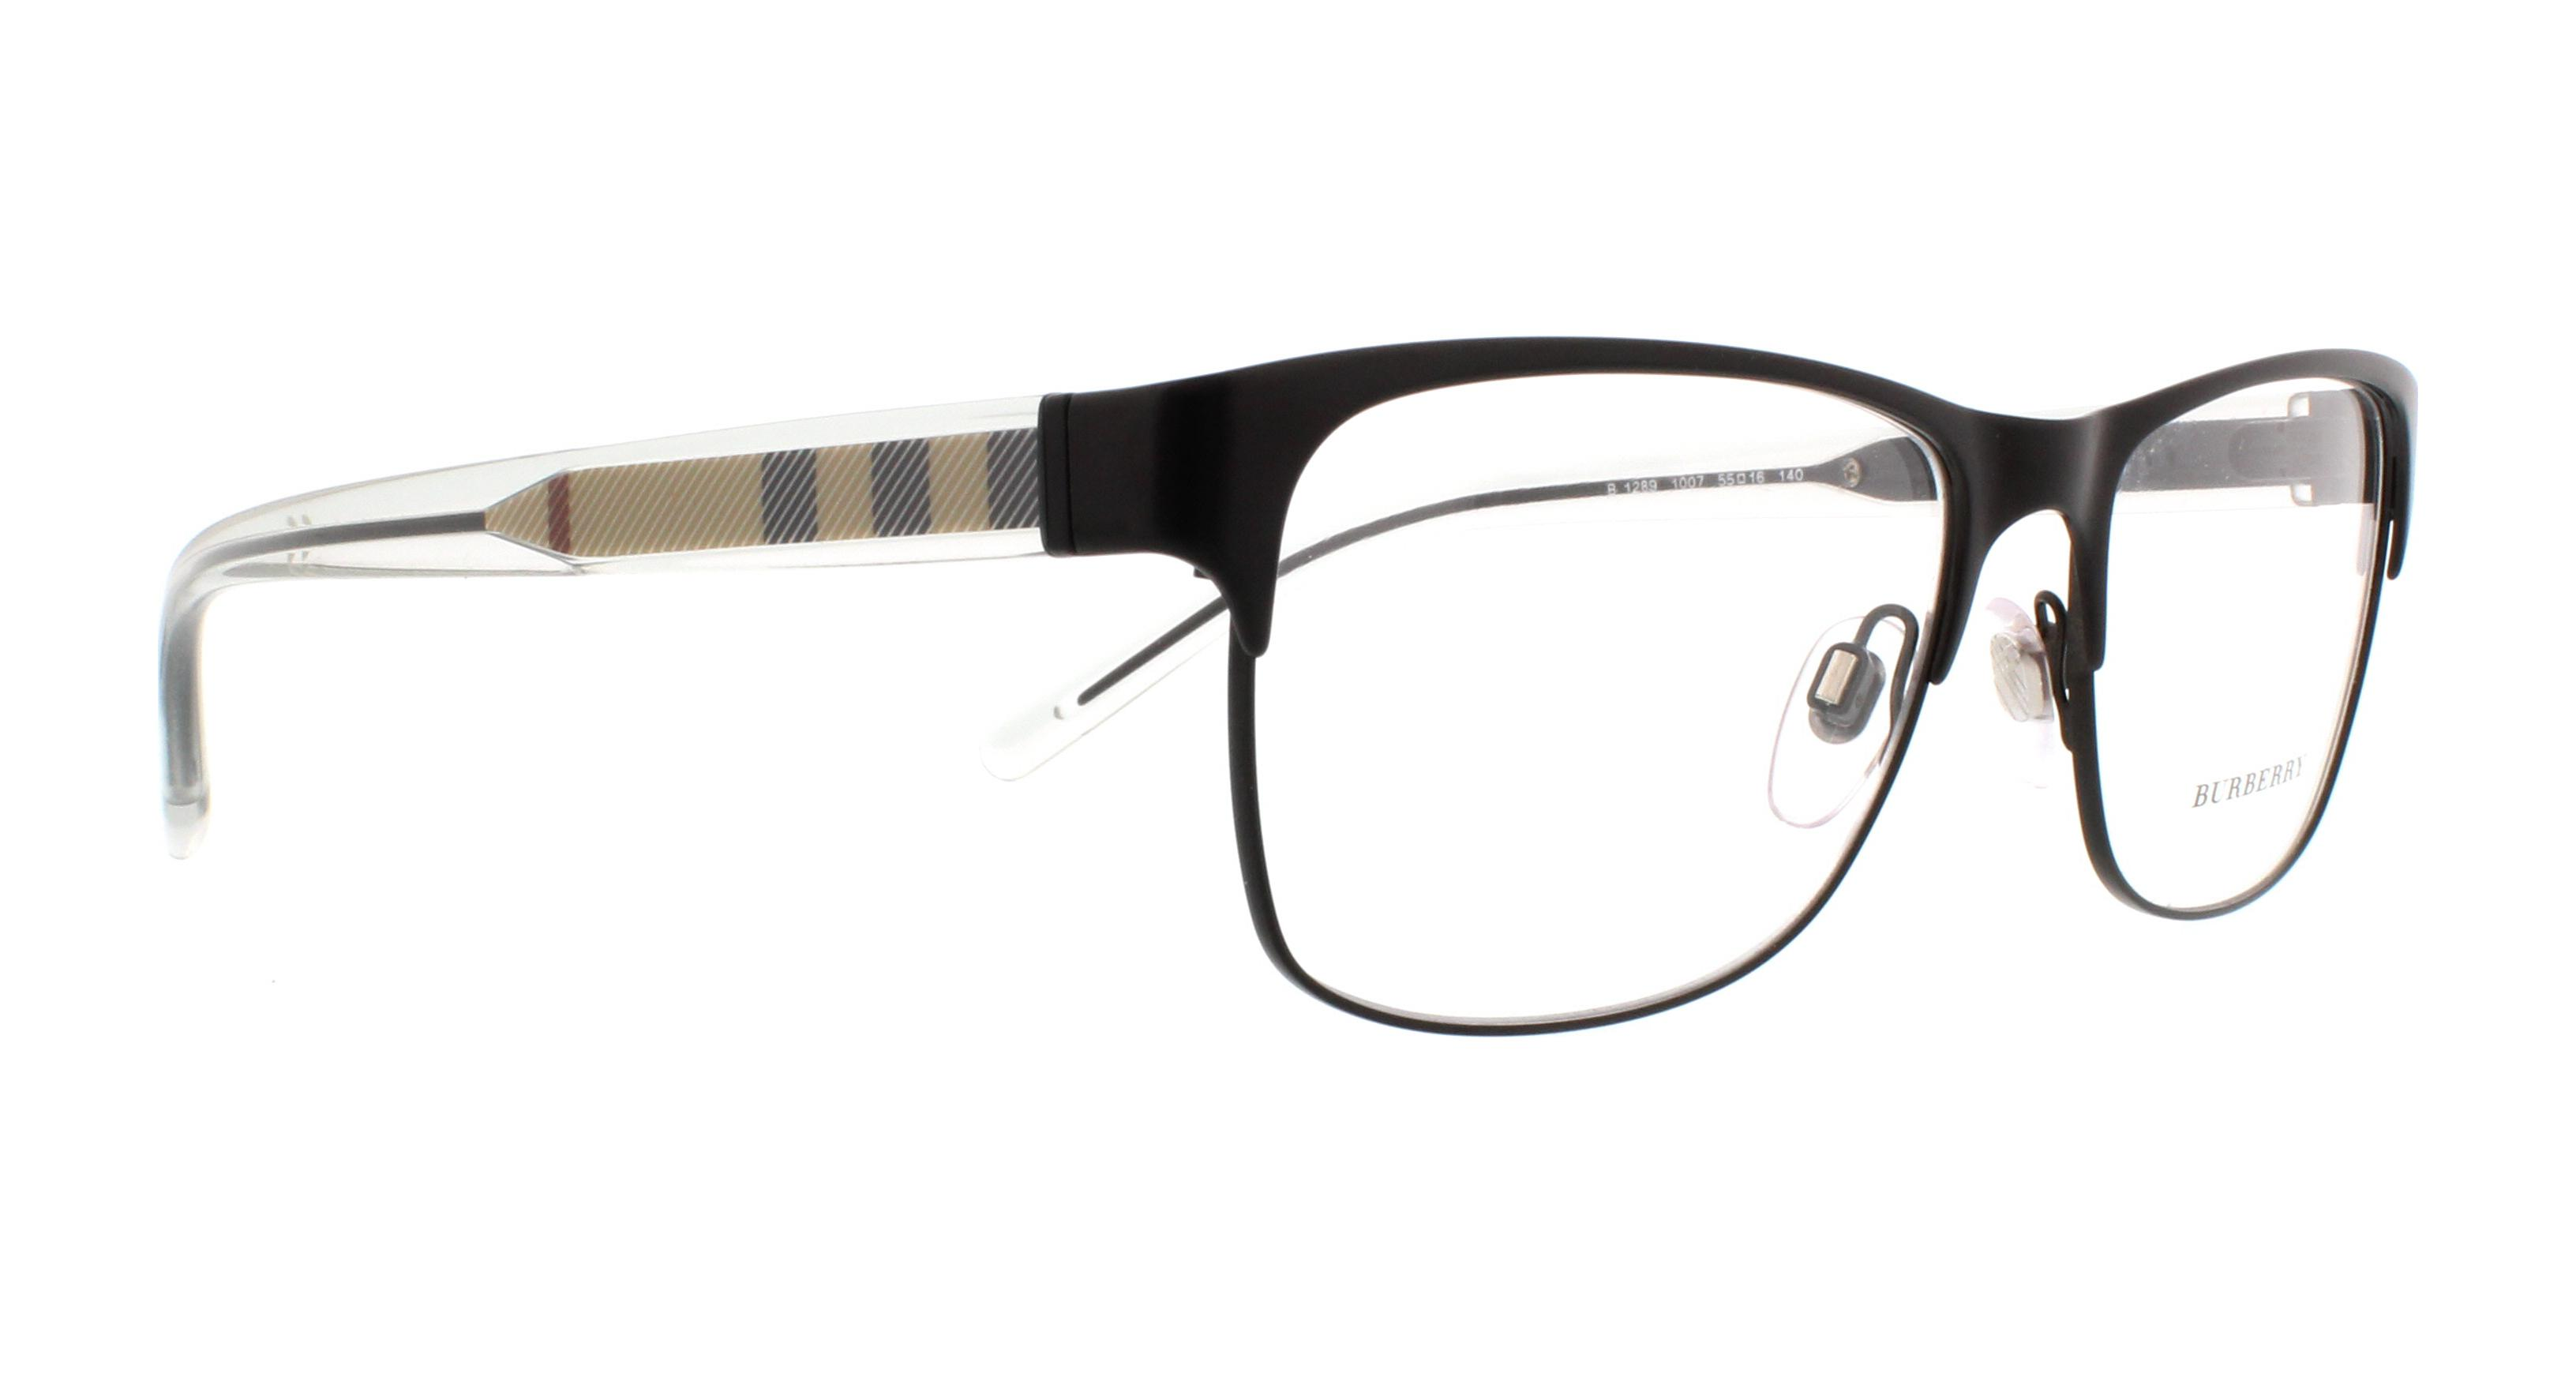 dfa6d84699 Burberry Glasses Repair - Best Glasses Cnapracticetesting.Com 2018